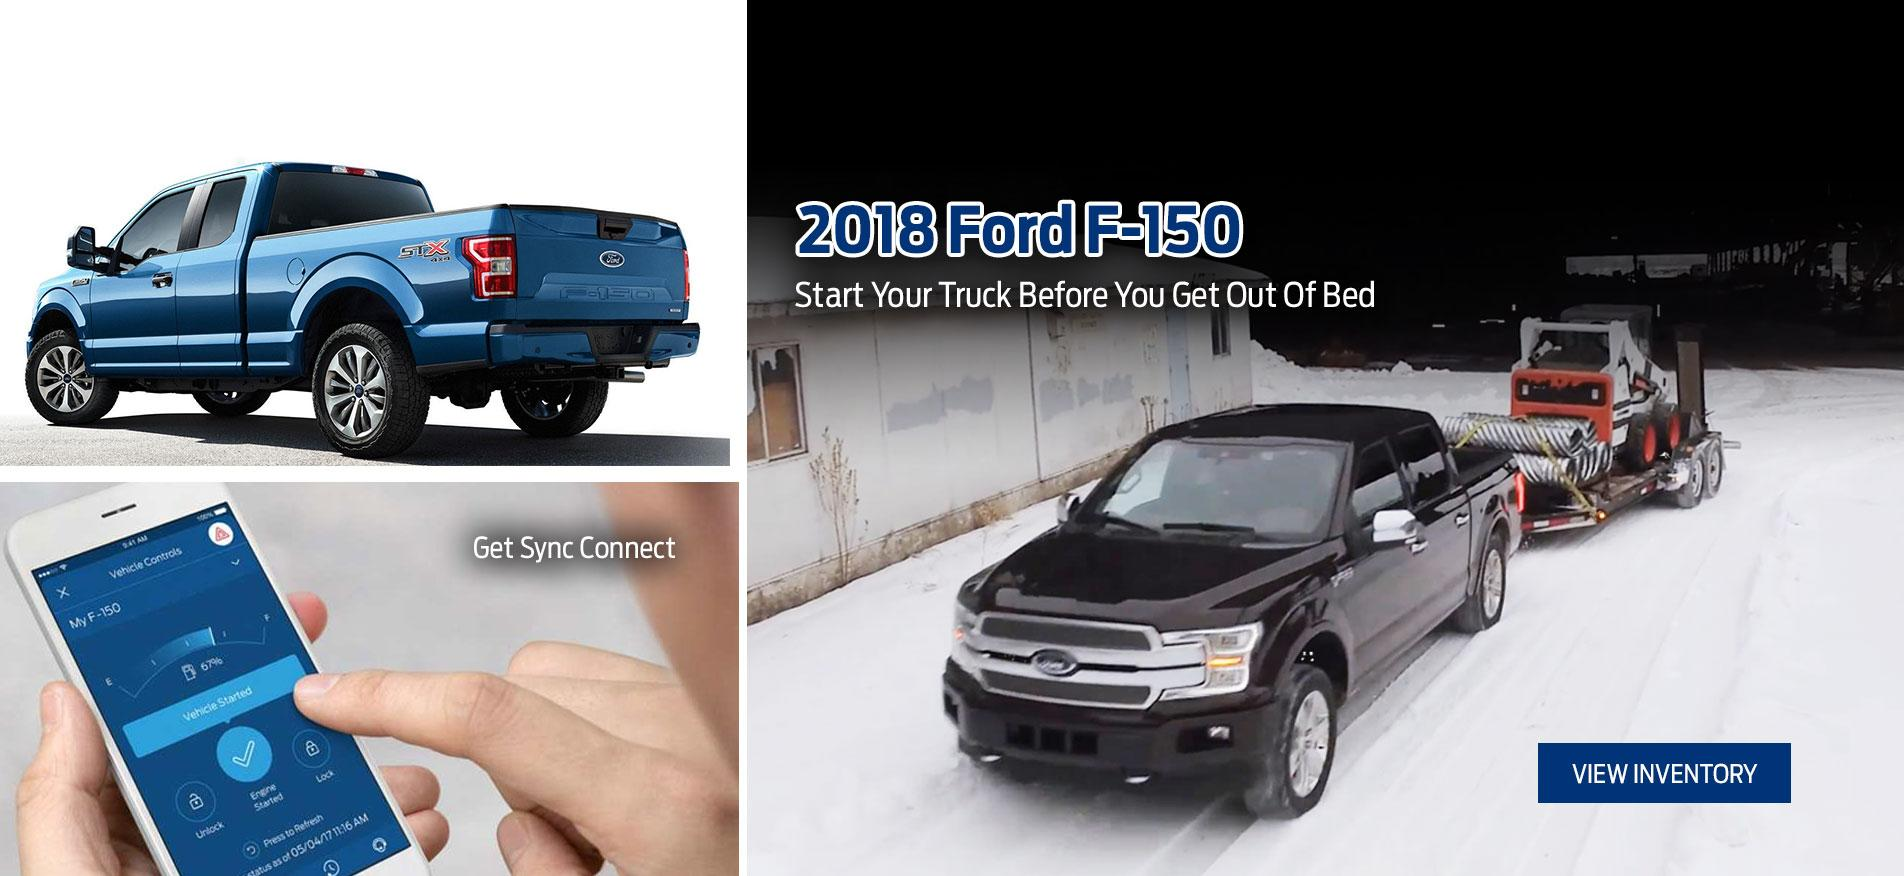 Introducing the all-new 2018 Ford F-150 Merlin Ford Saskatoon